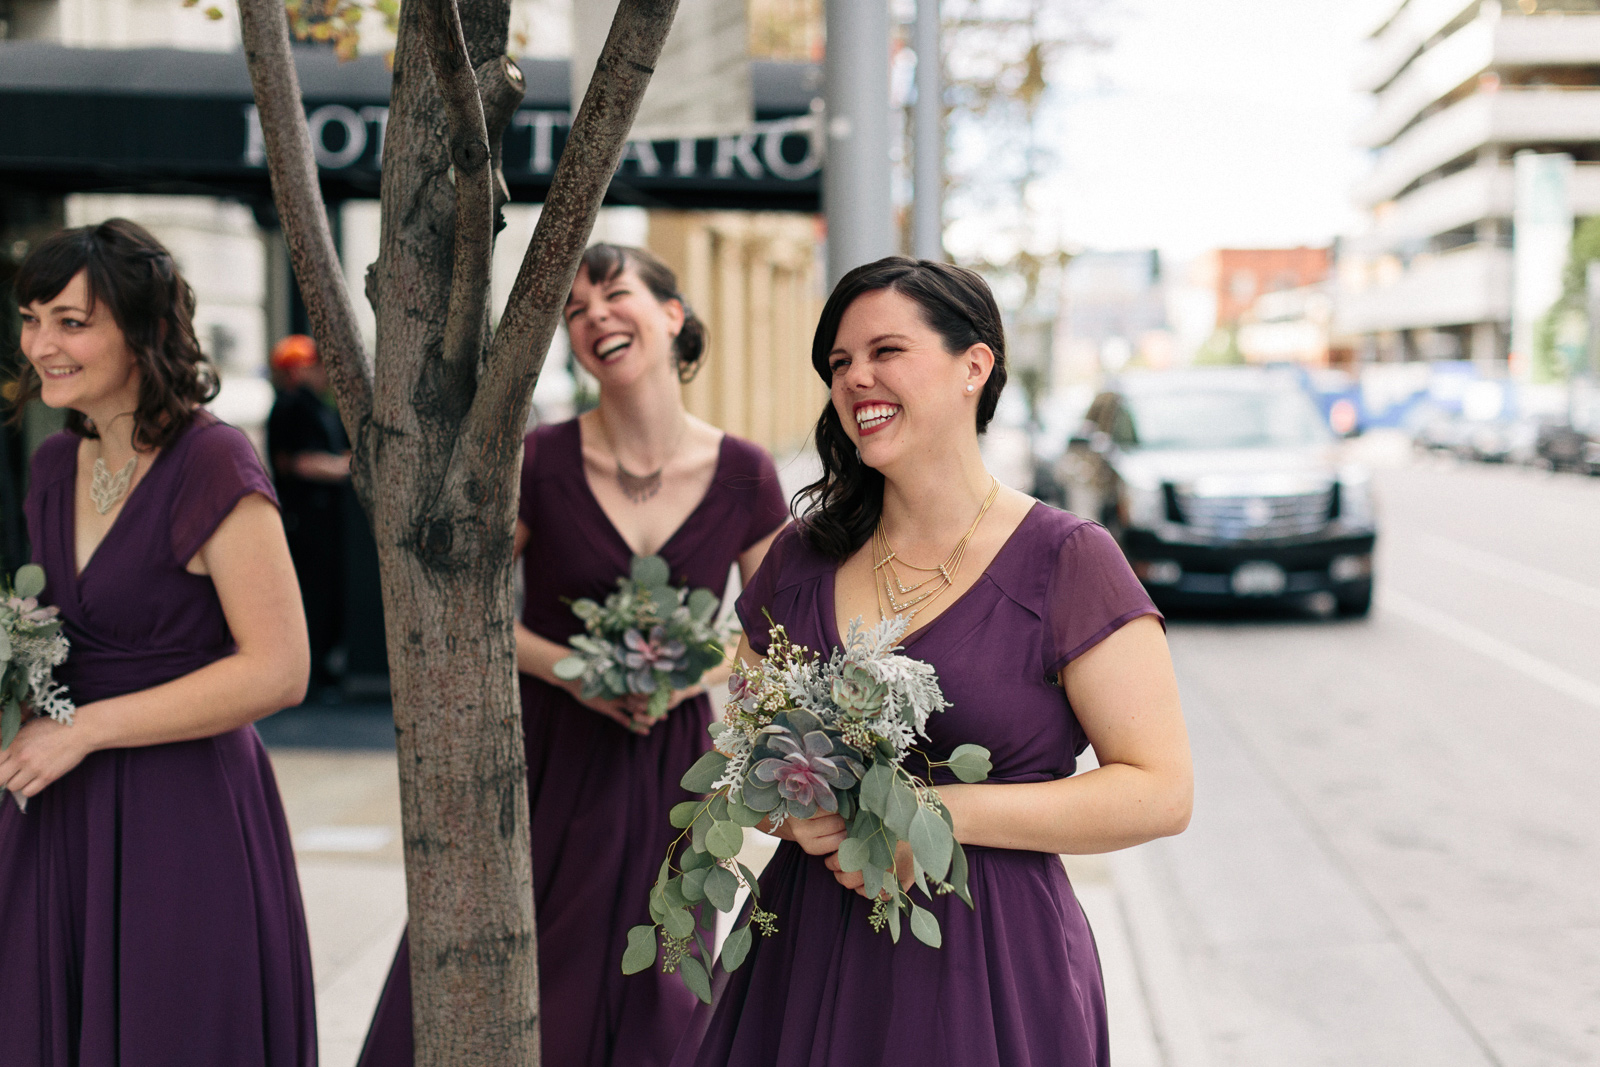 Coo-Hills-Wedding-Photographer-Downtown-Denver-Rebecc-and-Aaron-13.jpg